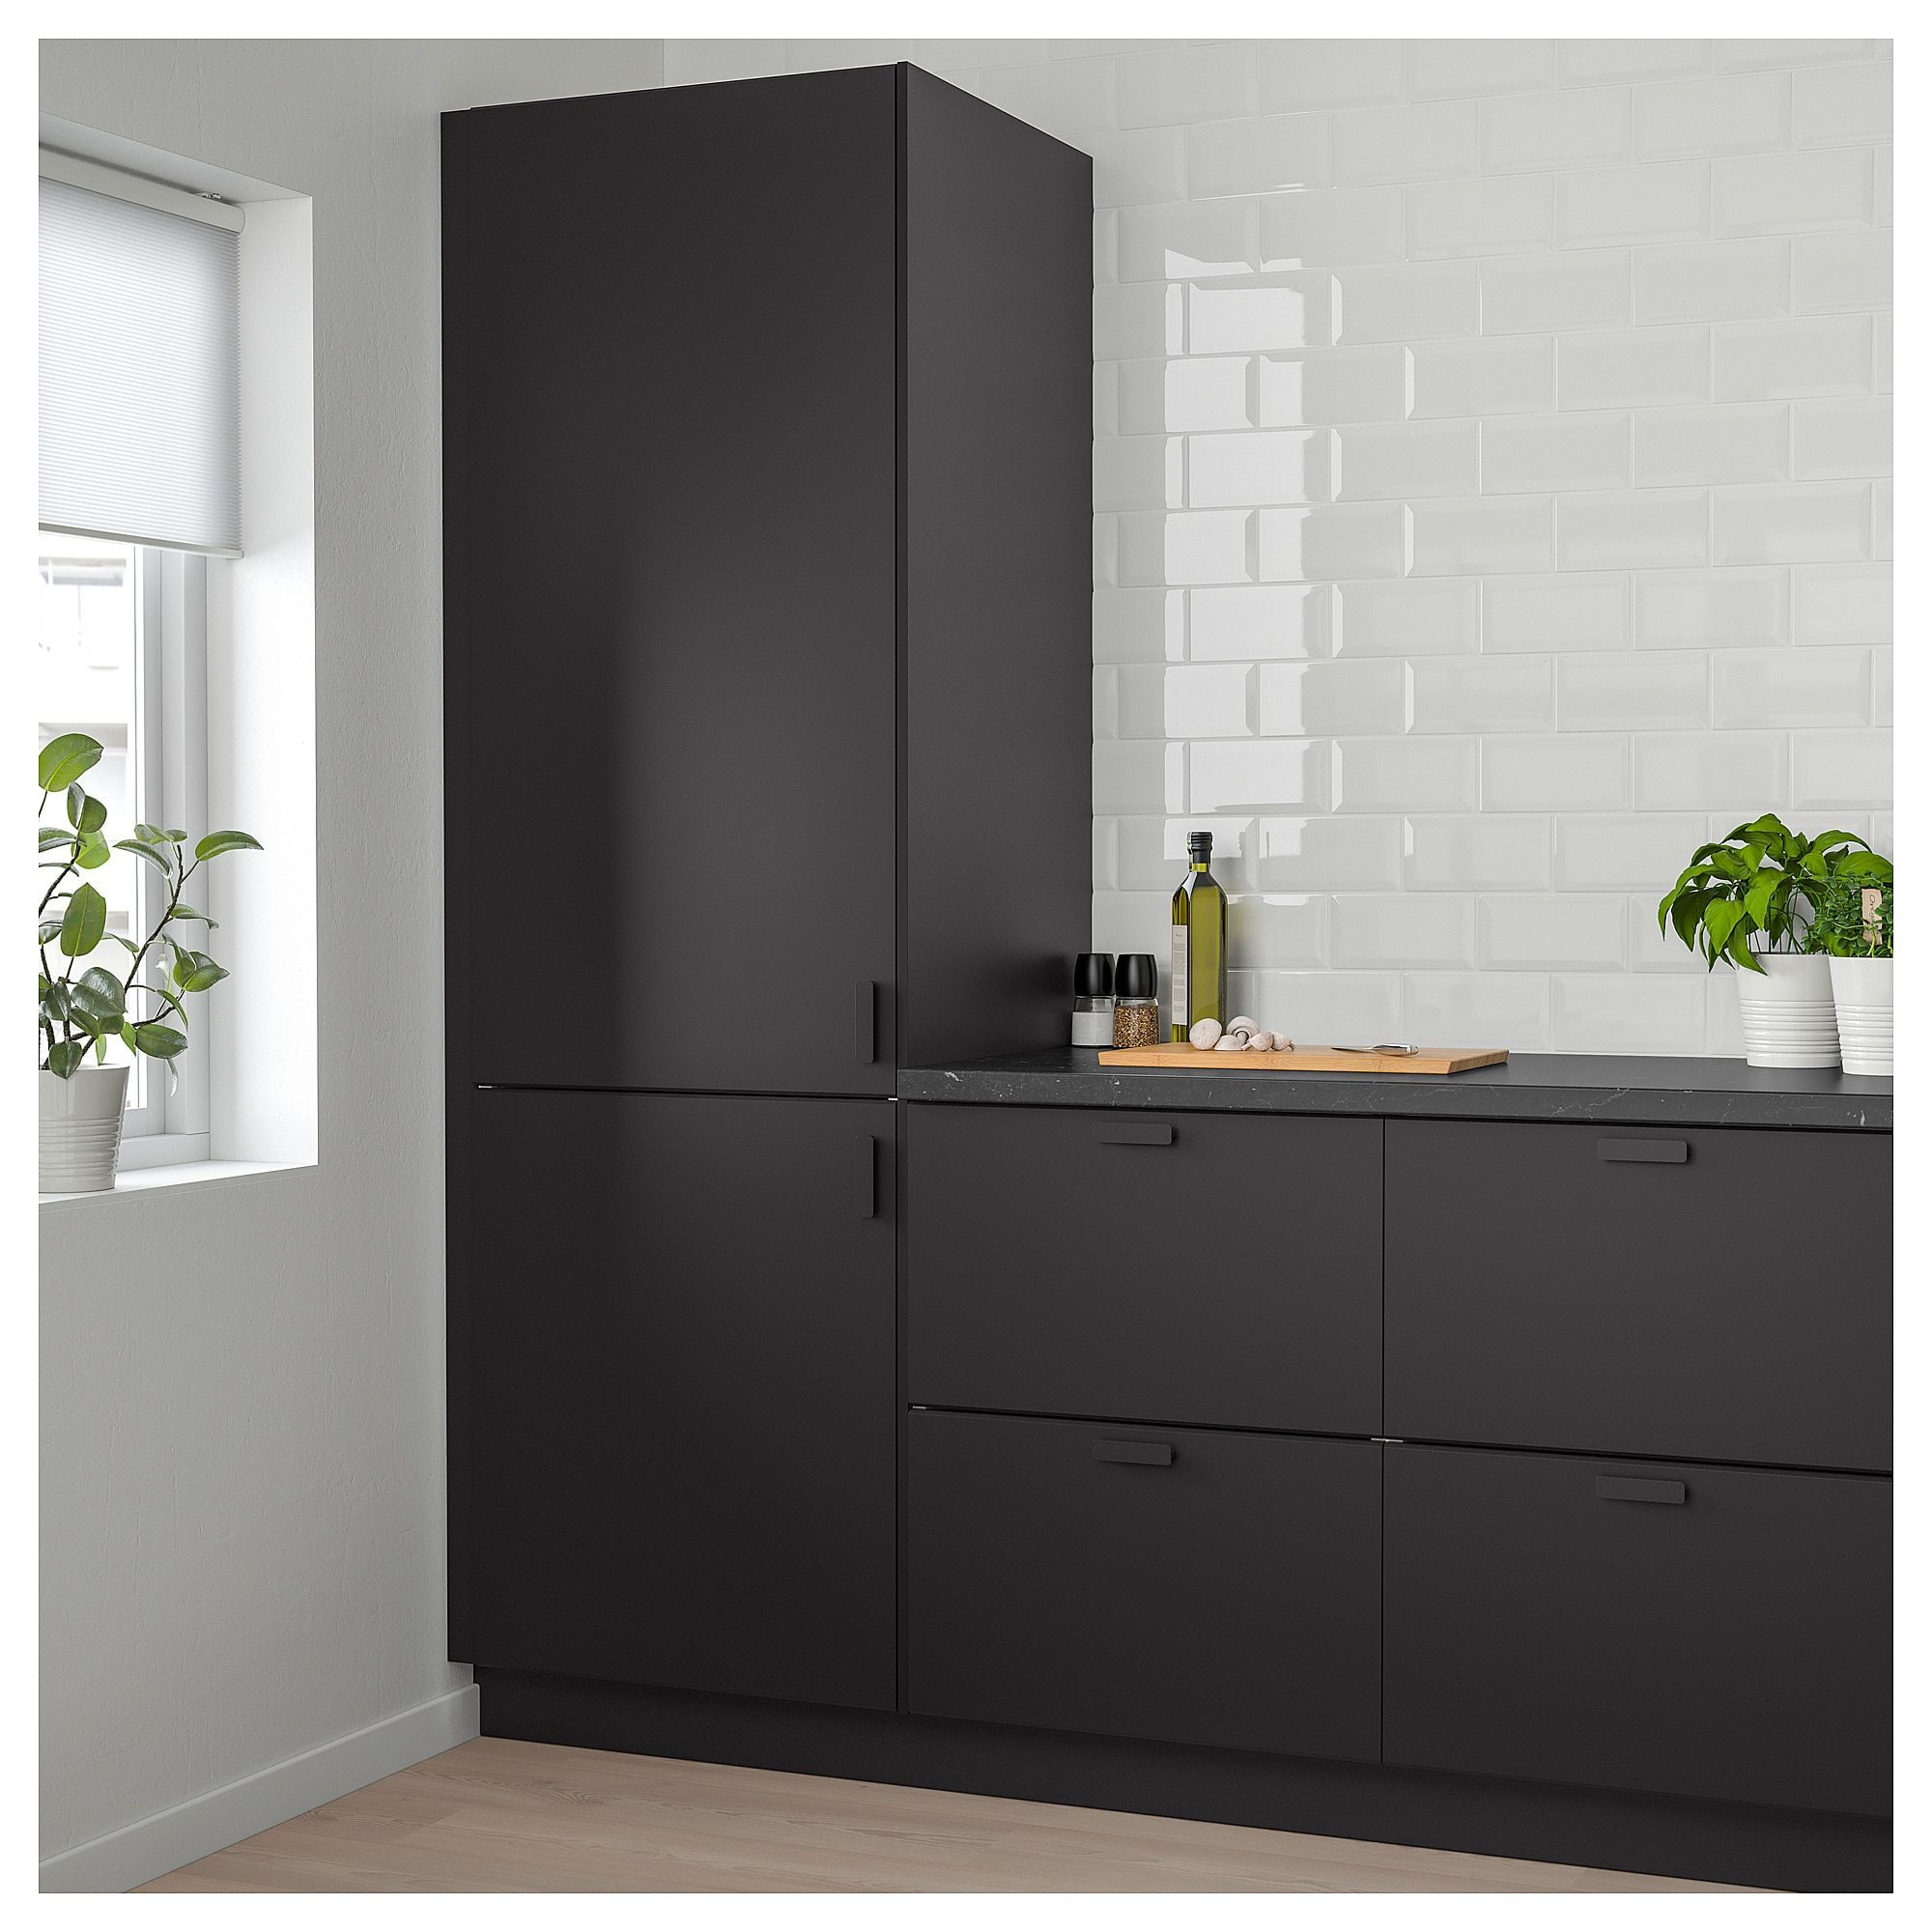 Best Ikea Kungsbacka Door Anthracite Luxury Kitchen Design 400 x 300